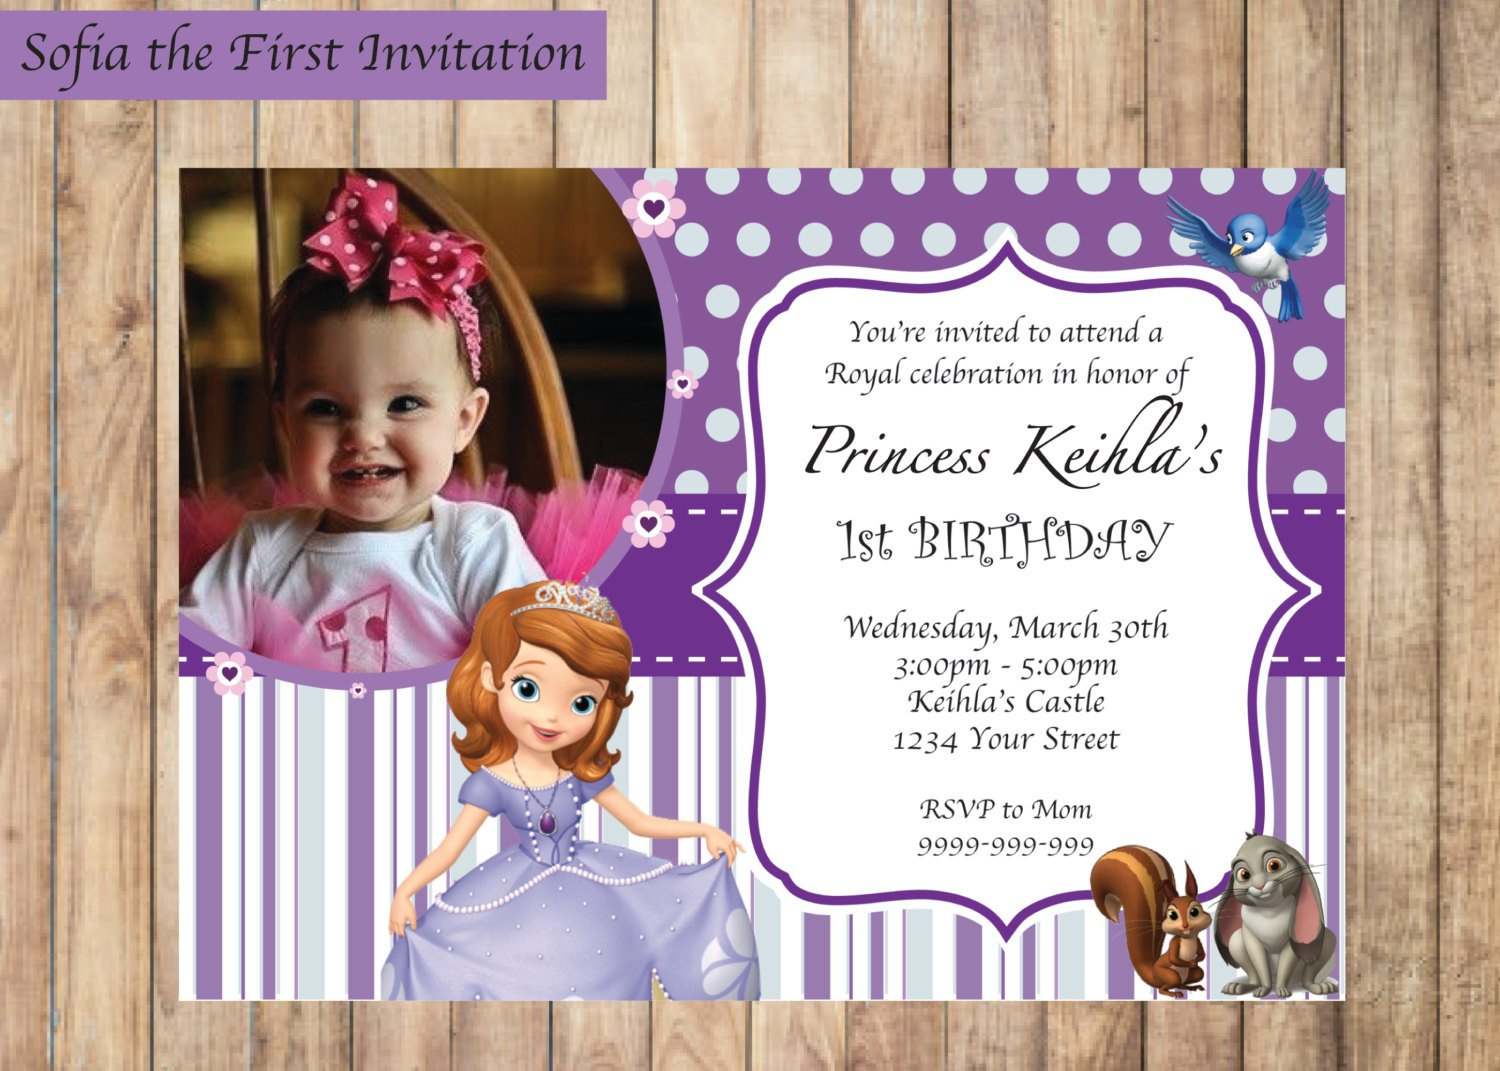 Sofia the First Invitation Templates sofia the First Invitation Printable Birthday Party Invite